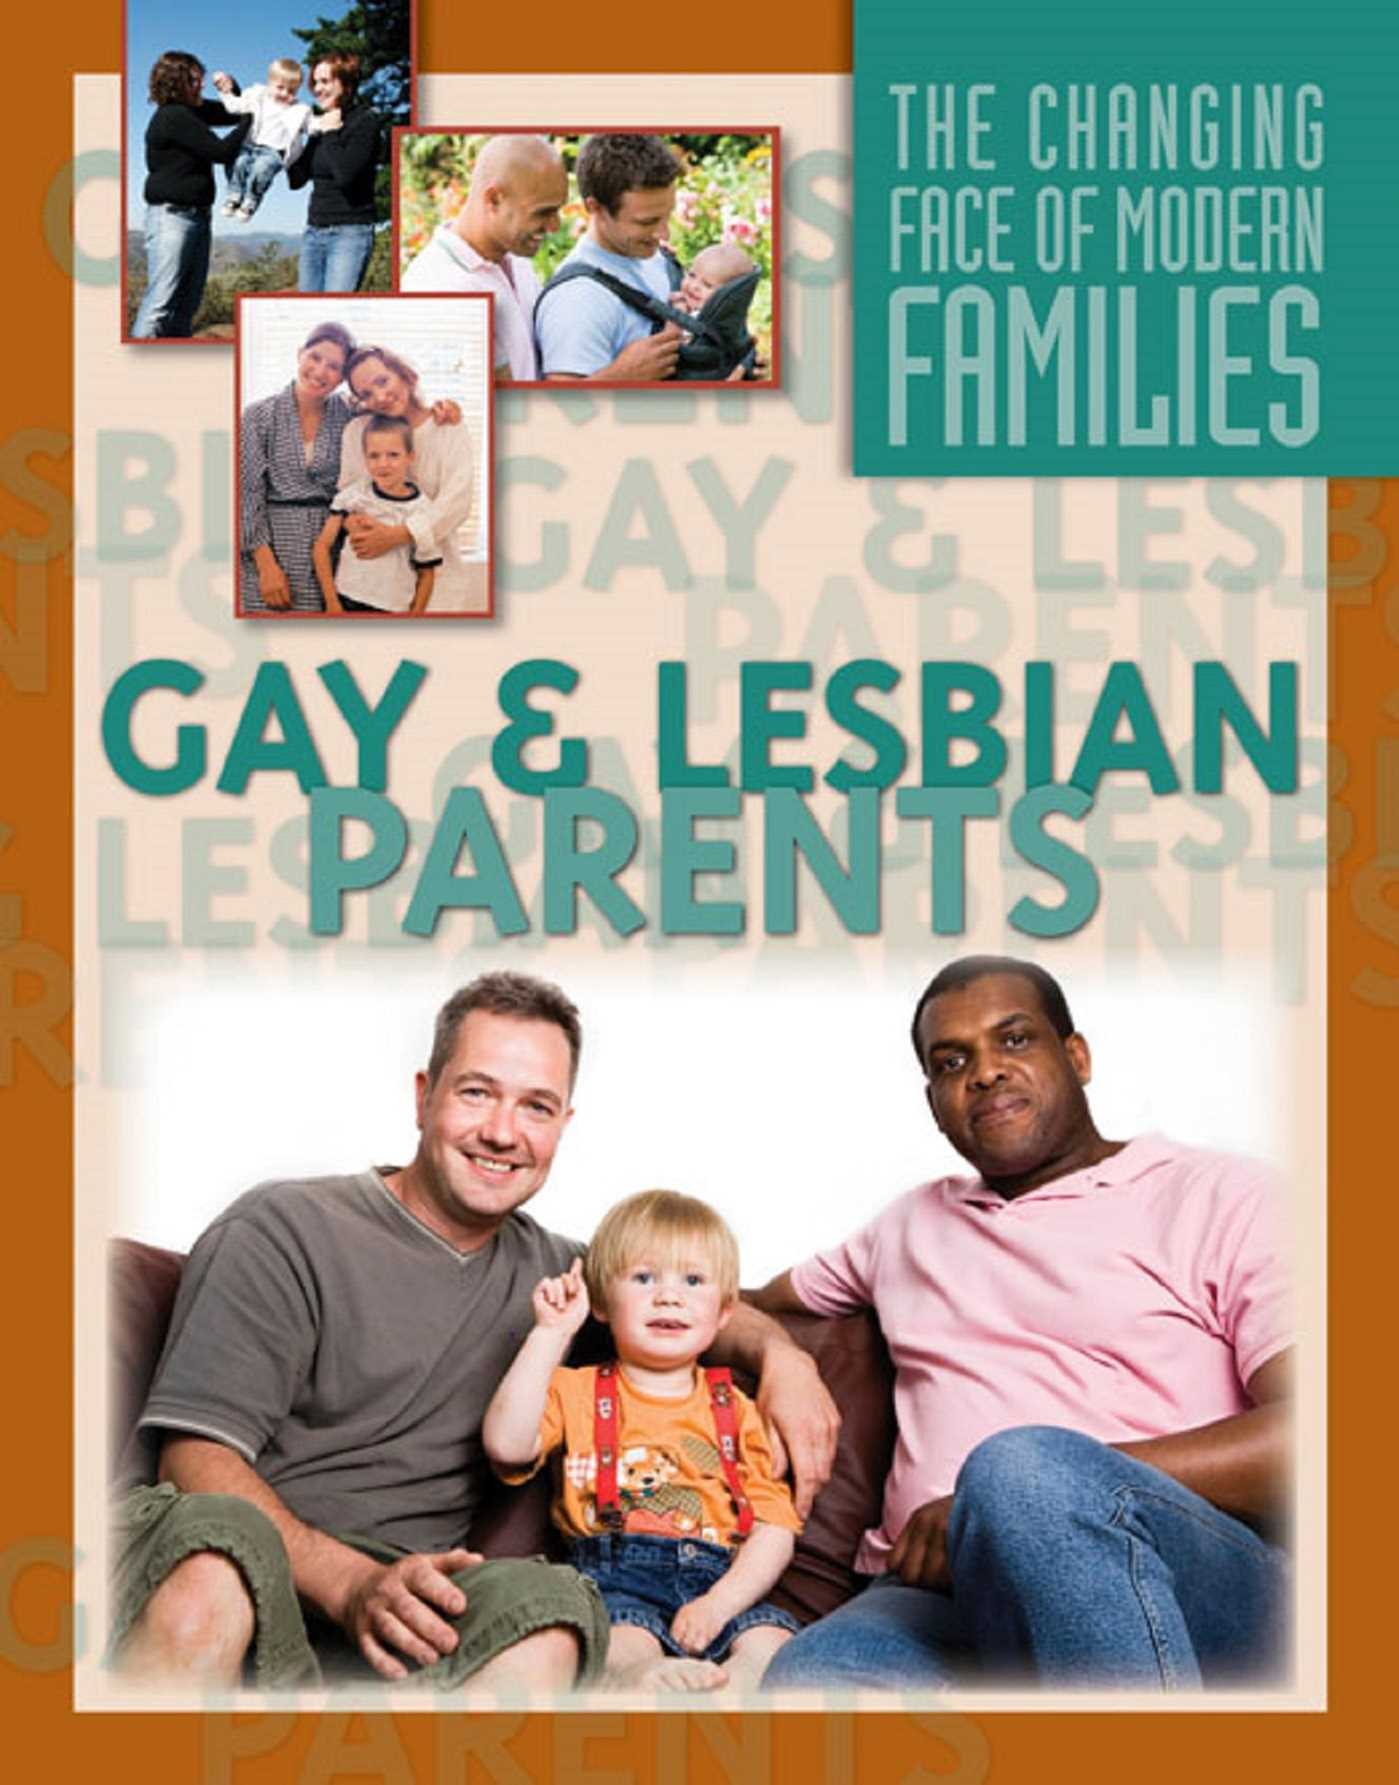 from Brendan gay lesbian parenting issues